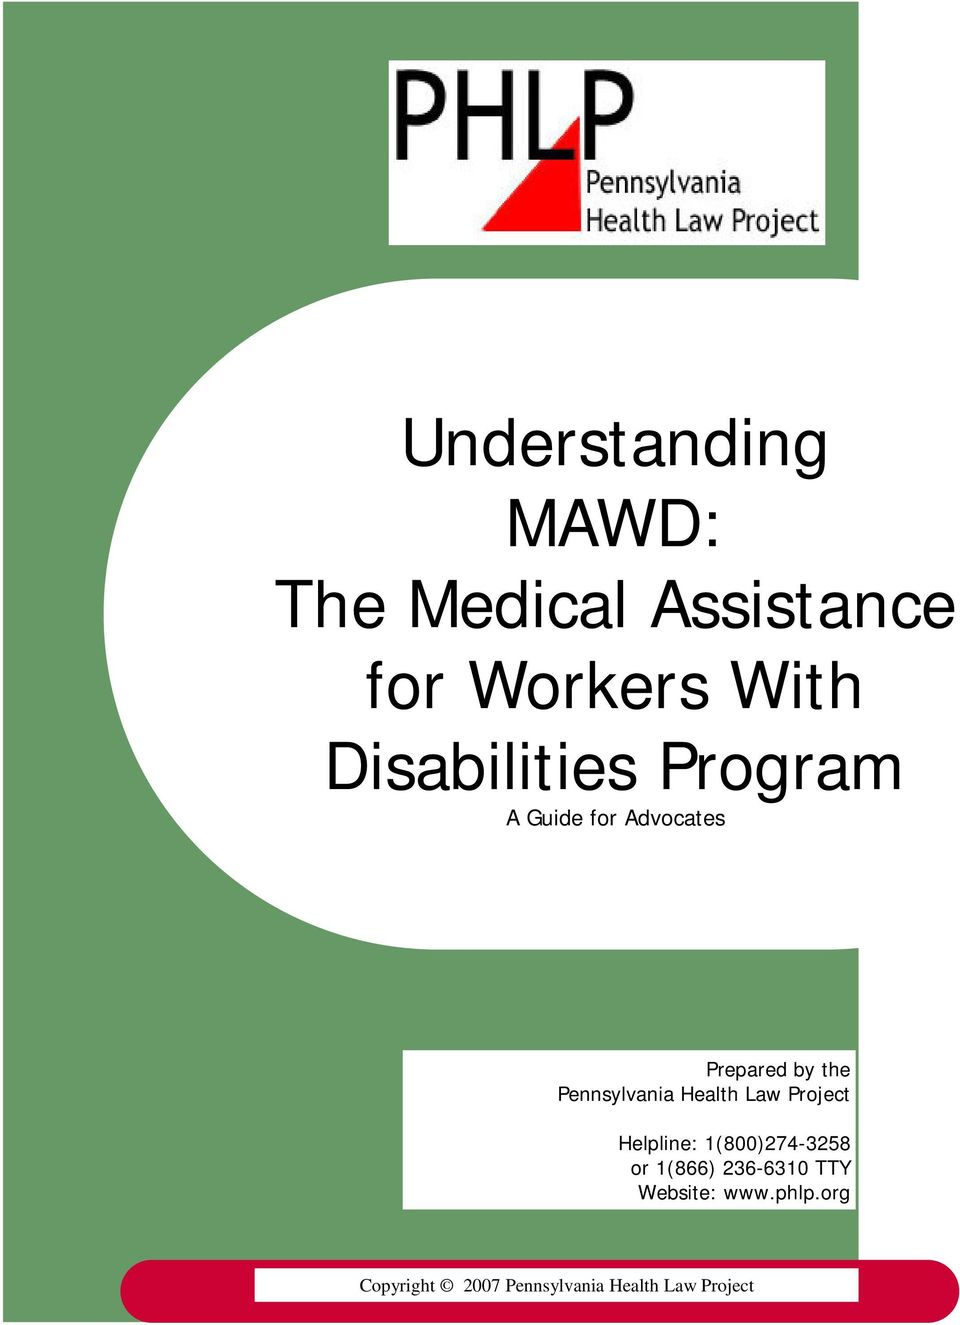 Understanding MAWD: The Medical Assistance for Workers With